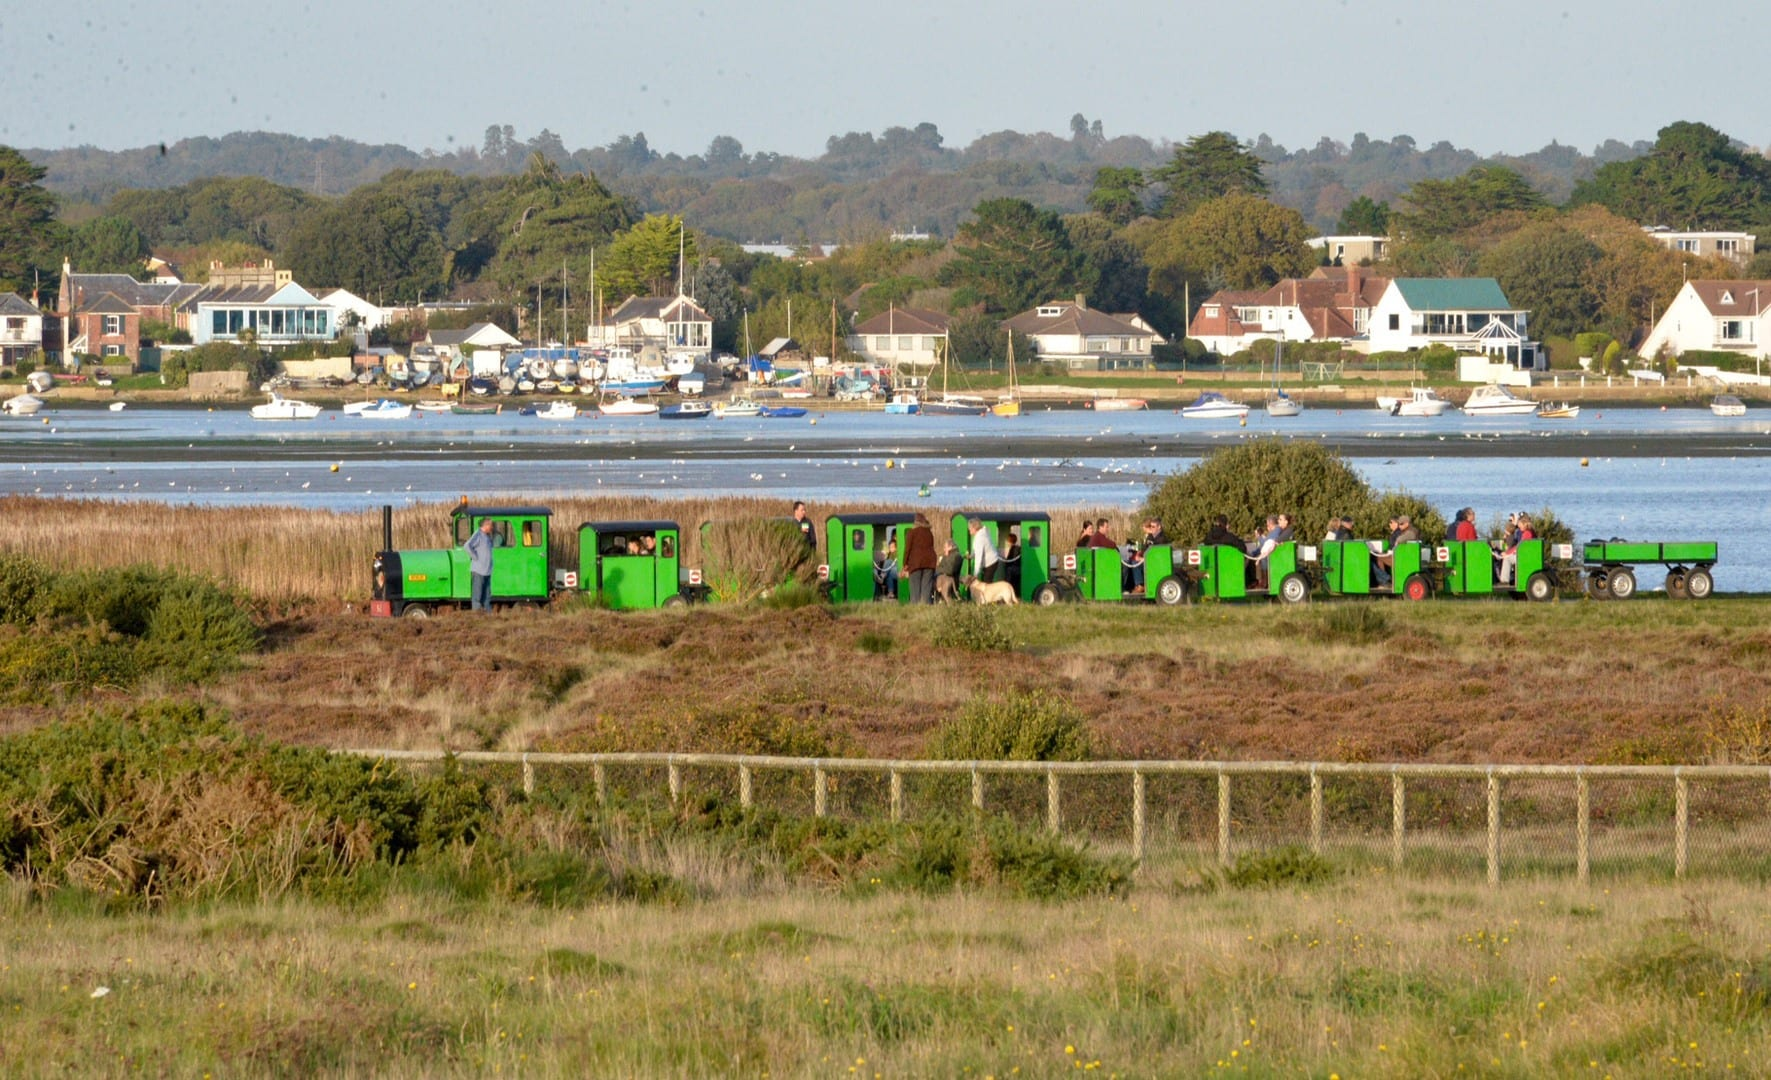 Hengistbury Head train with sailing boats and houses in the background